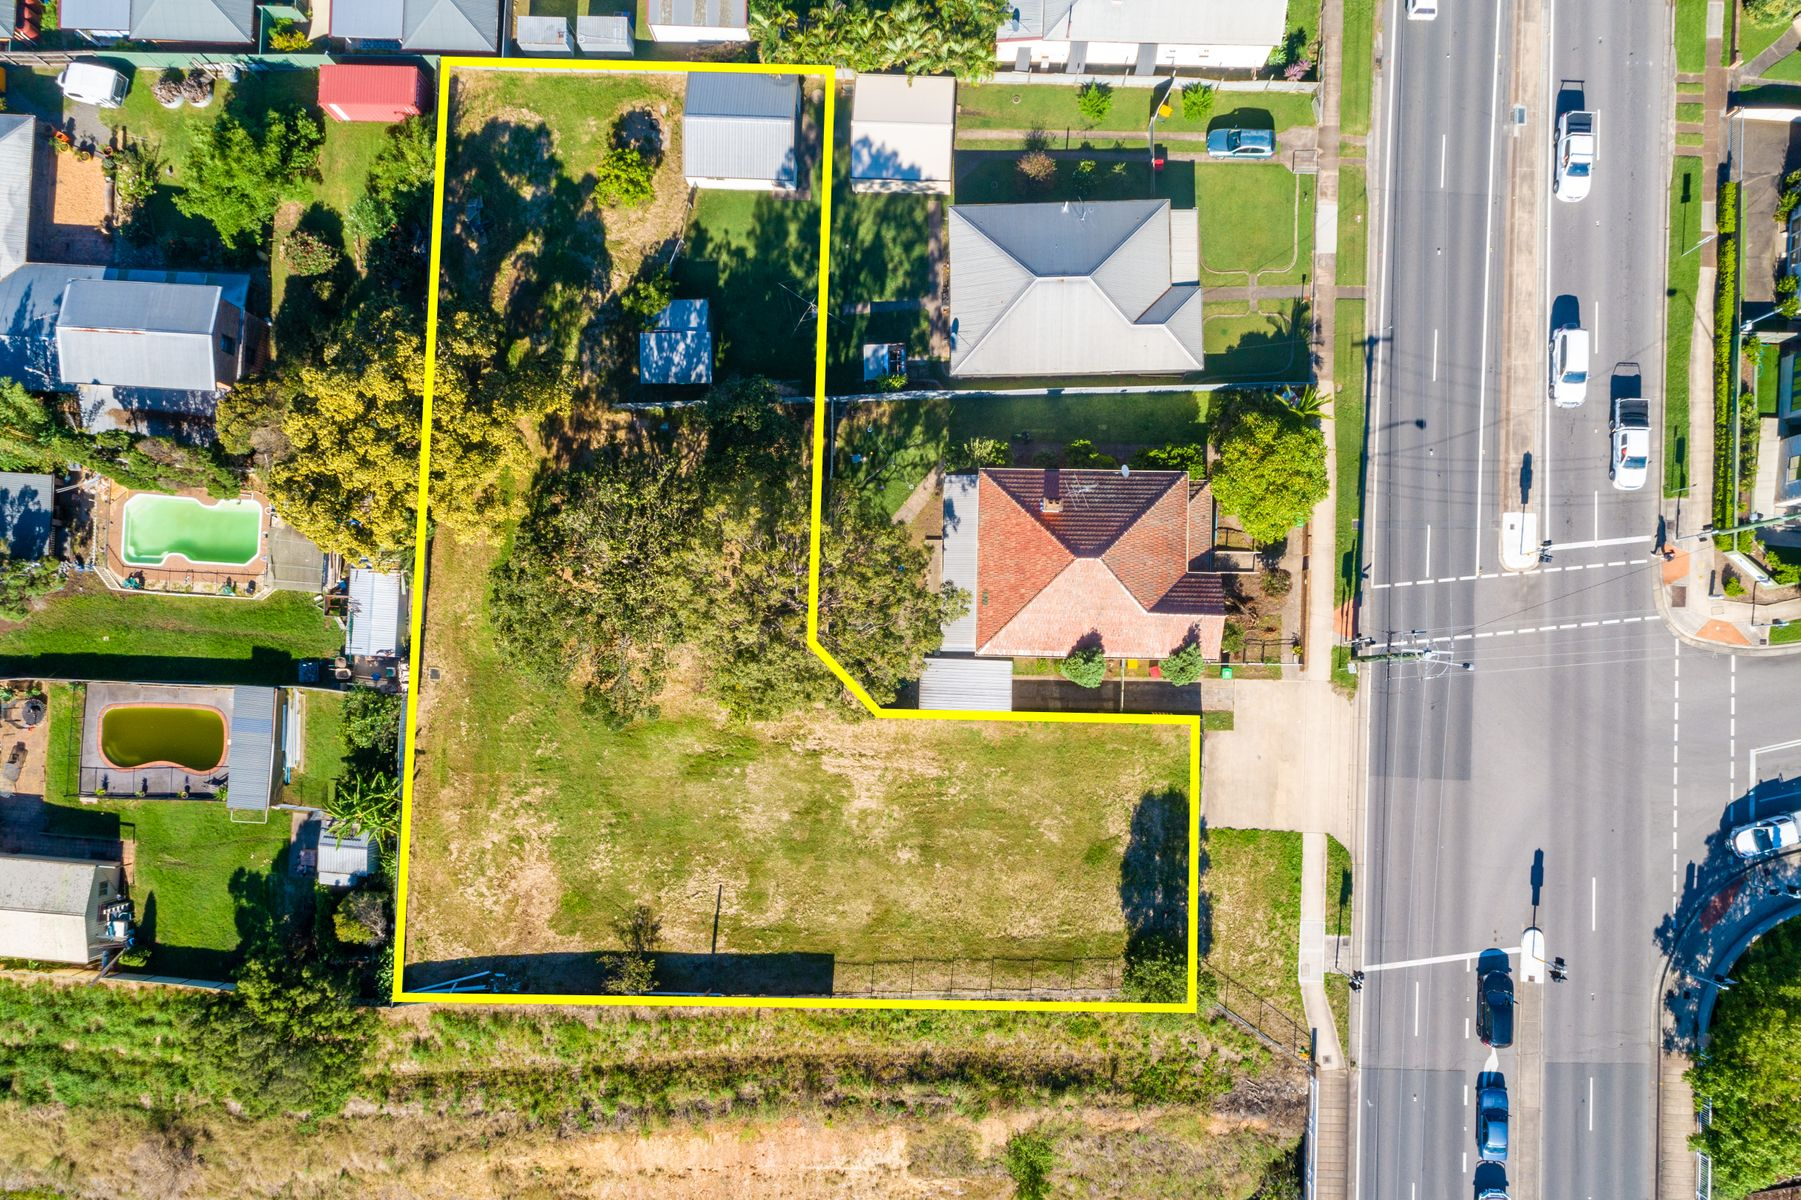 106 New England Highway, Maitland, NSW 2320